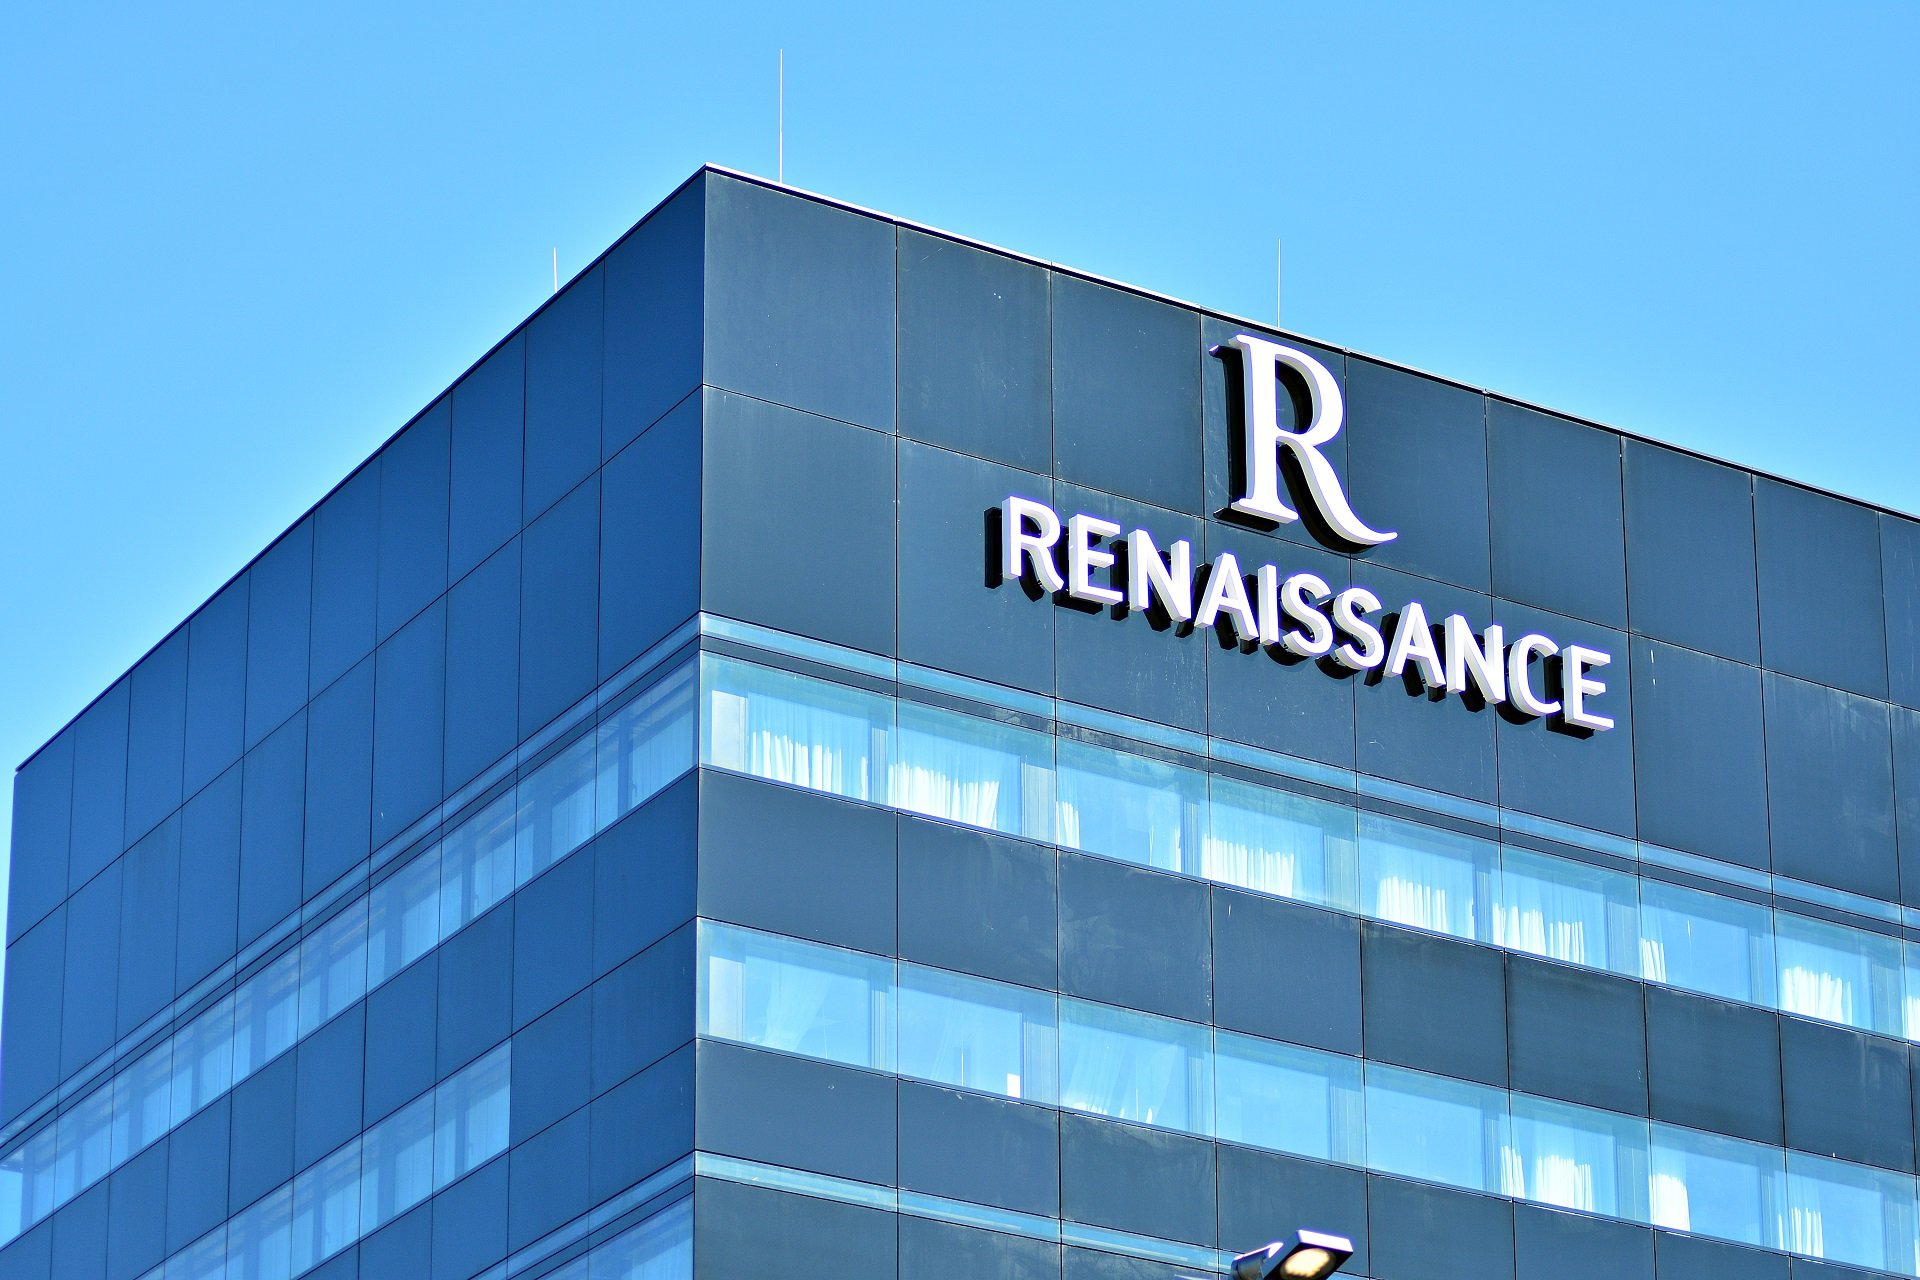 Renaissance IPO Indices Cooled as U.S. Q2 2021 IPO Activity Fell 59% in the Wake of Regulatory Crackdown on SPACs